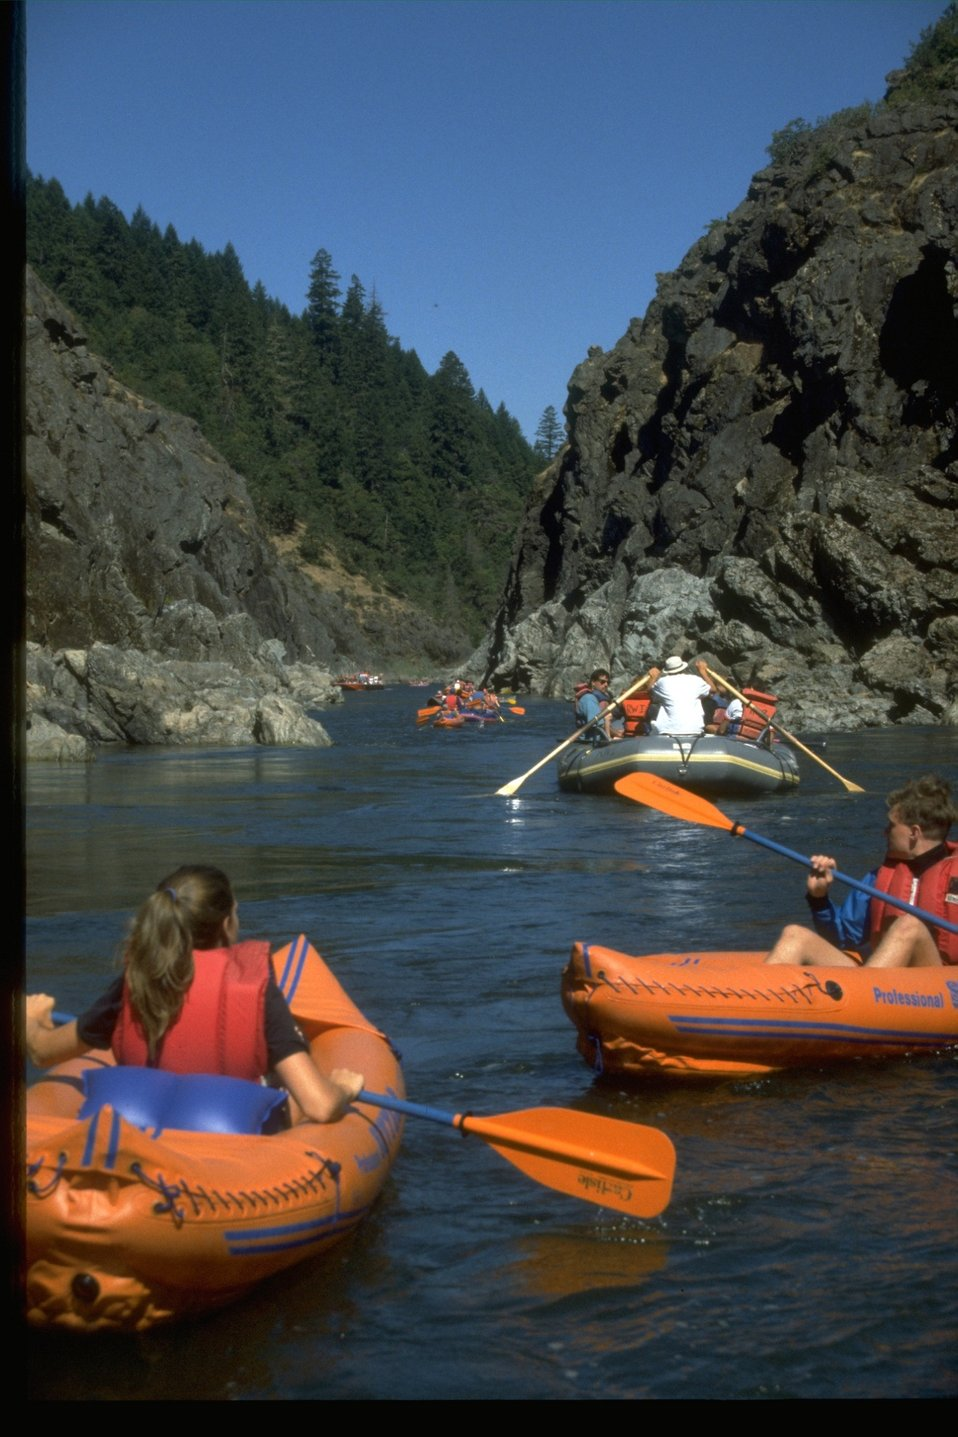 Rafting through the Hellgate Canyon on the Rogue River.